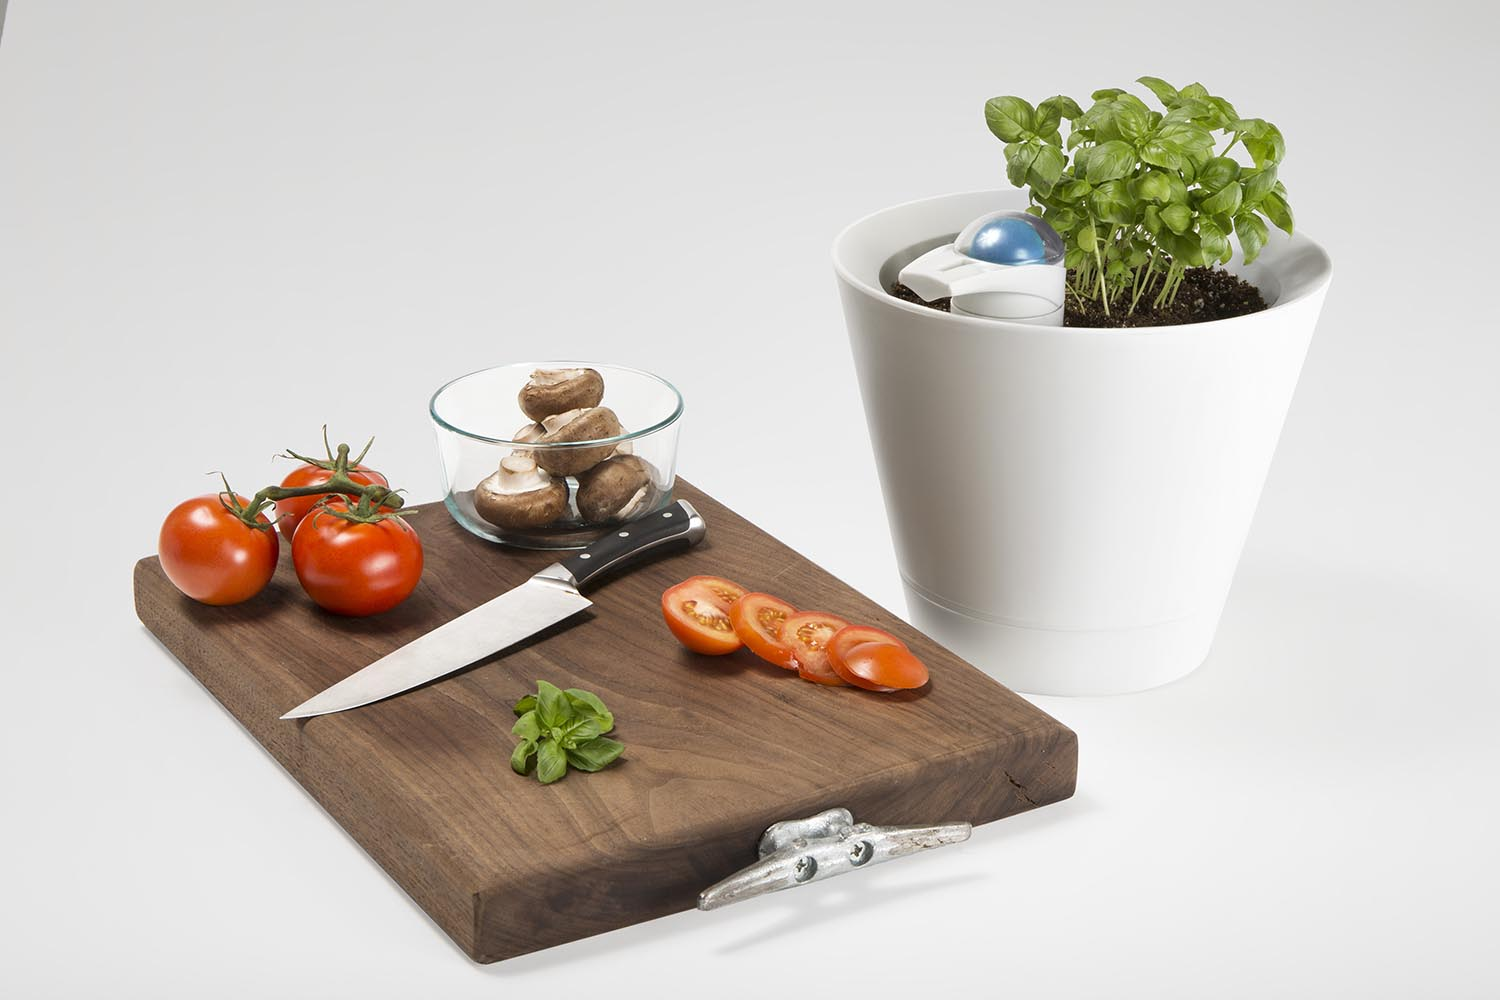 Photo of Automatic watering planter for kitchen design with basil and tomatoes